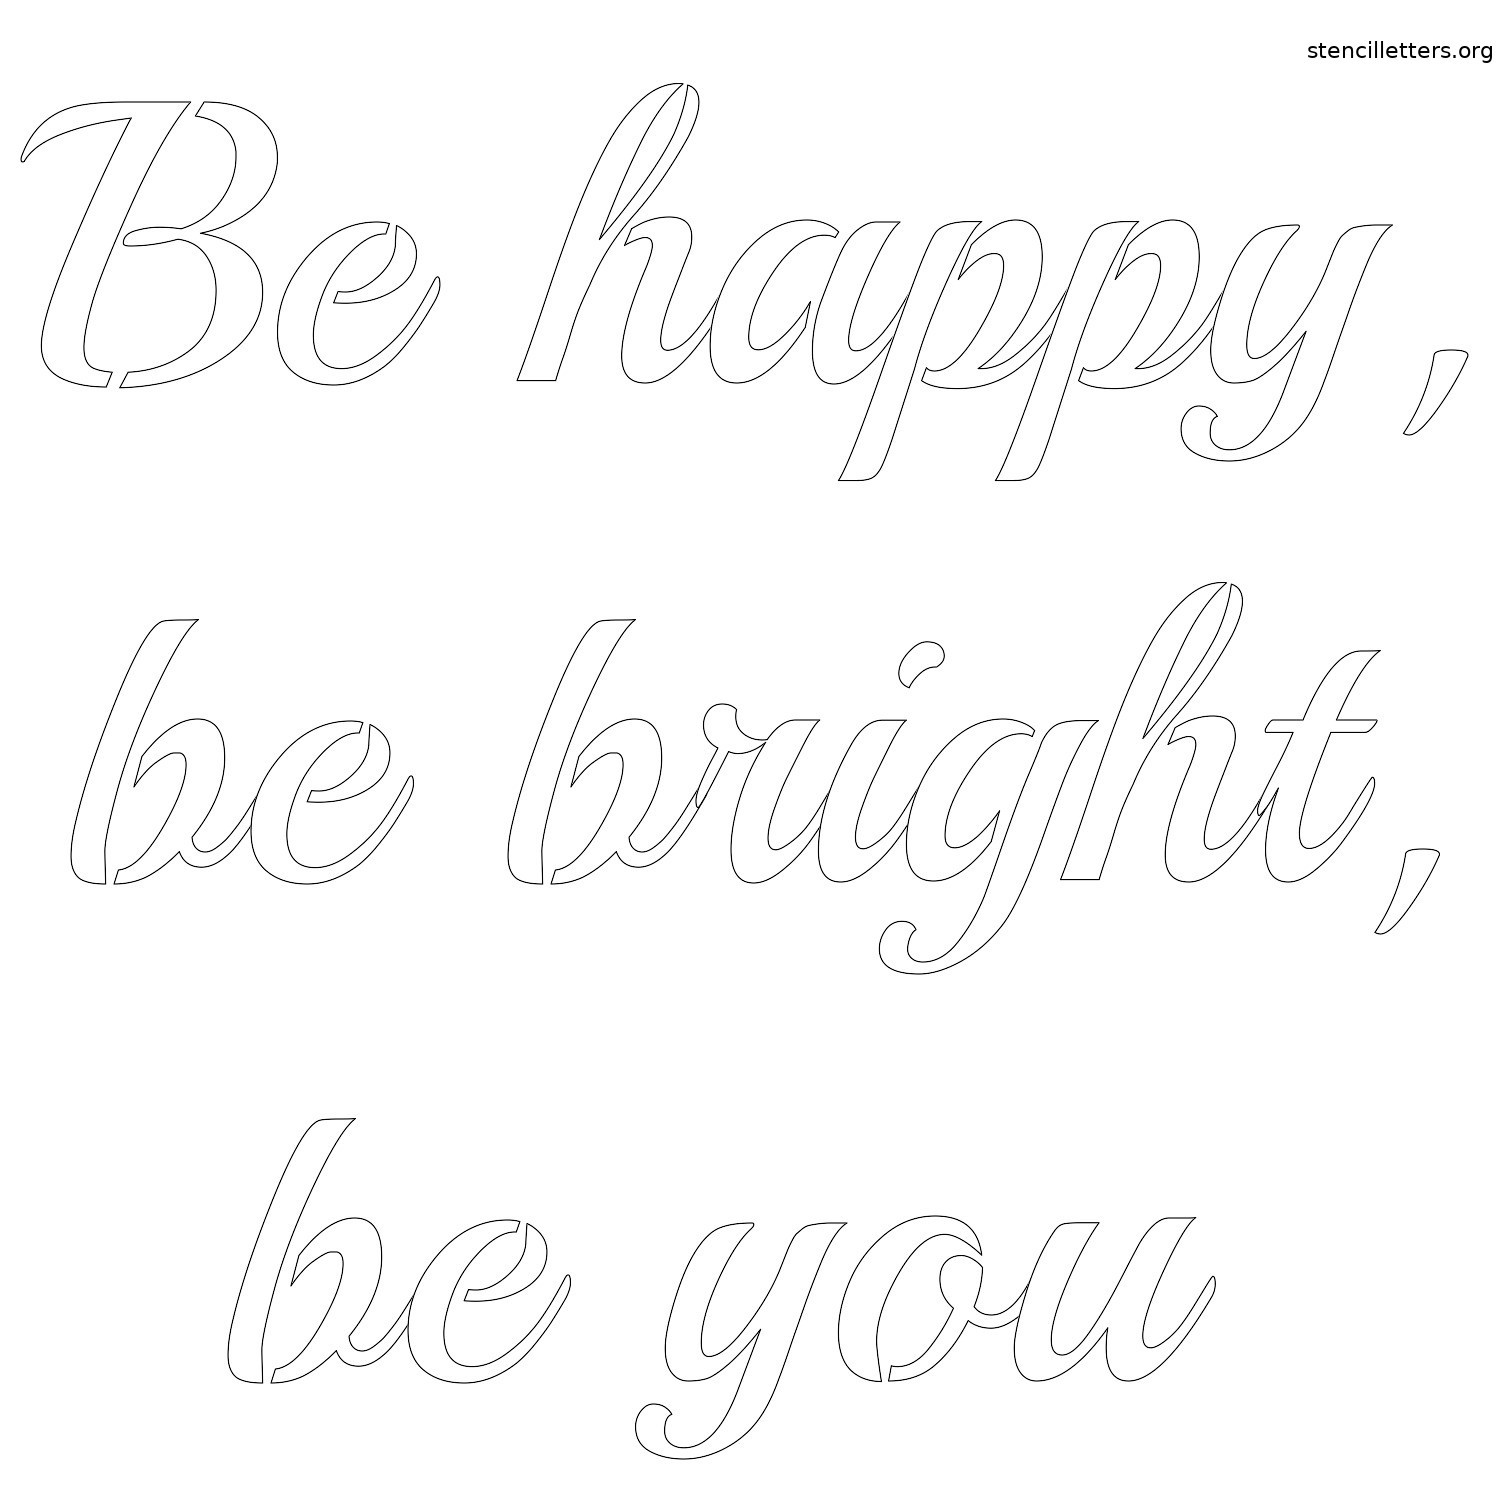 picture regarding Printable Calligraphy Stencils titled Be content, be vibrant, be by yourself totally free printable letter stencil